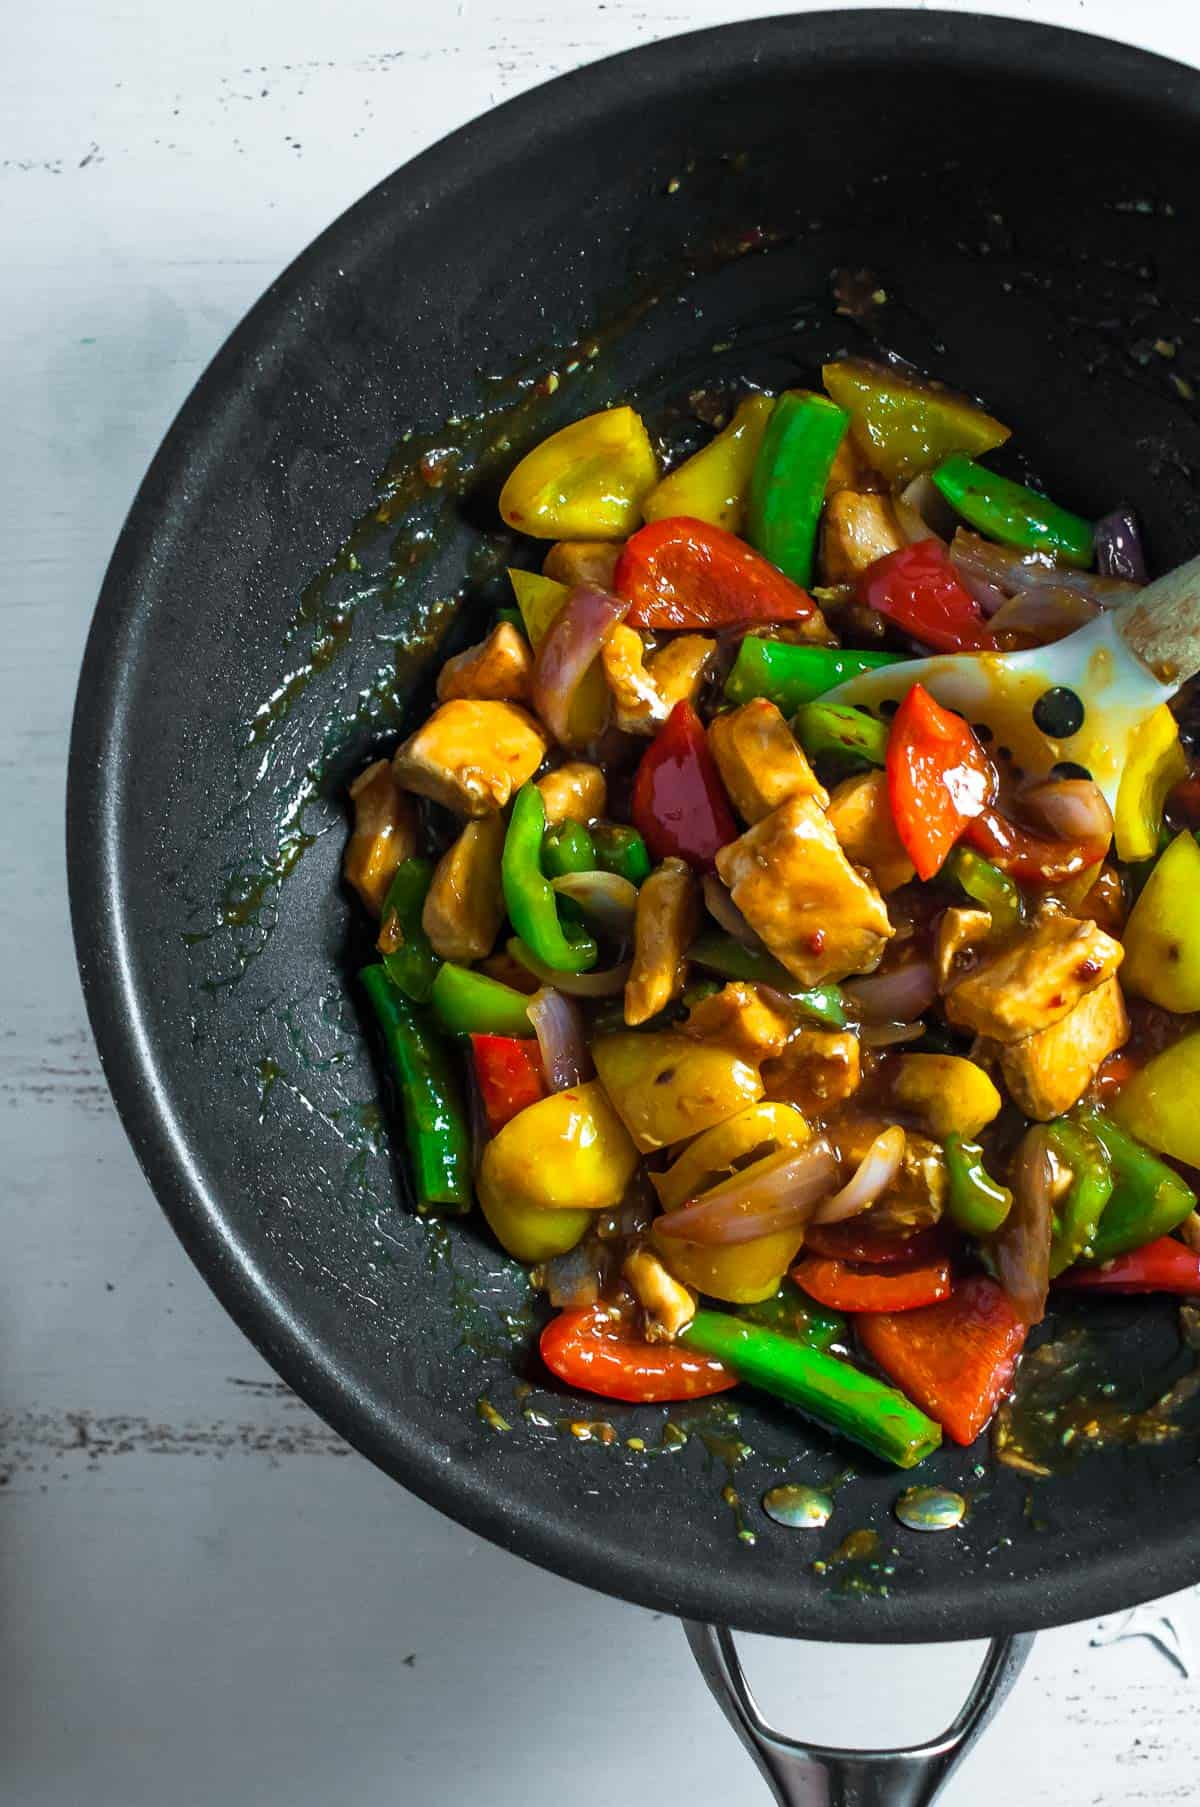 Salmon stir fry cooking in a wok